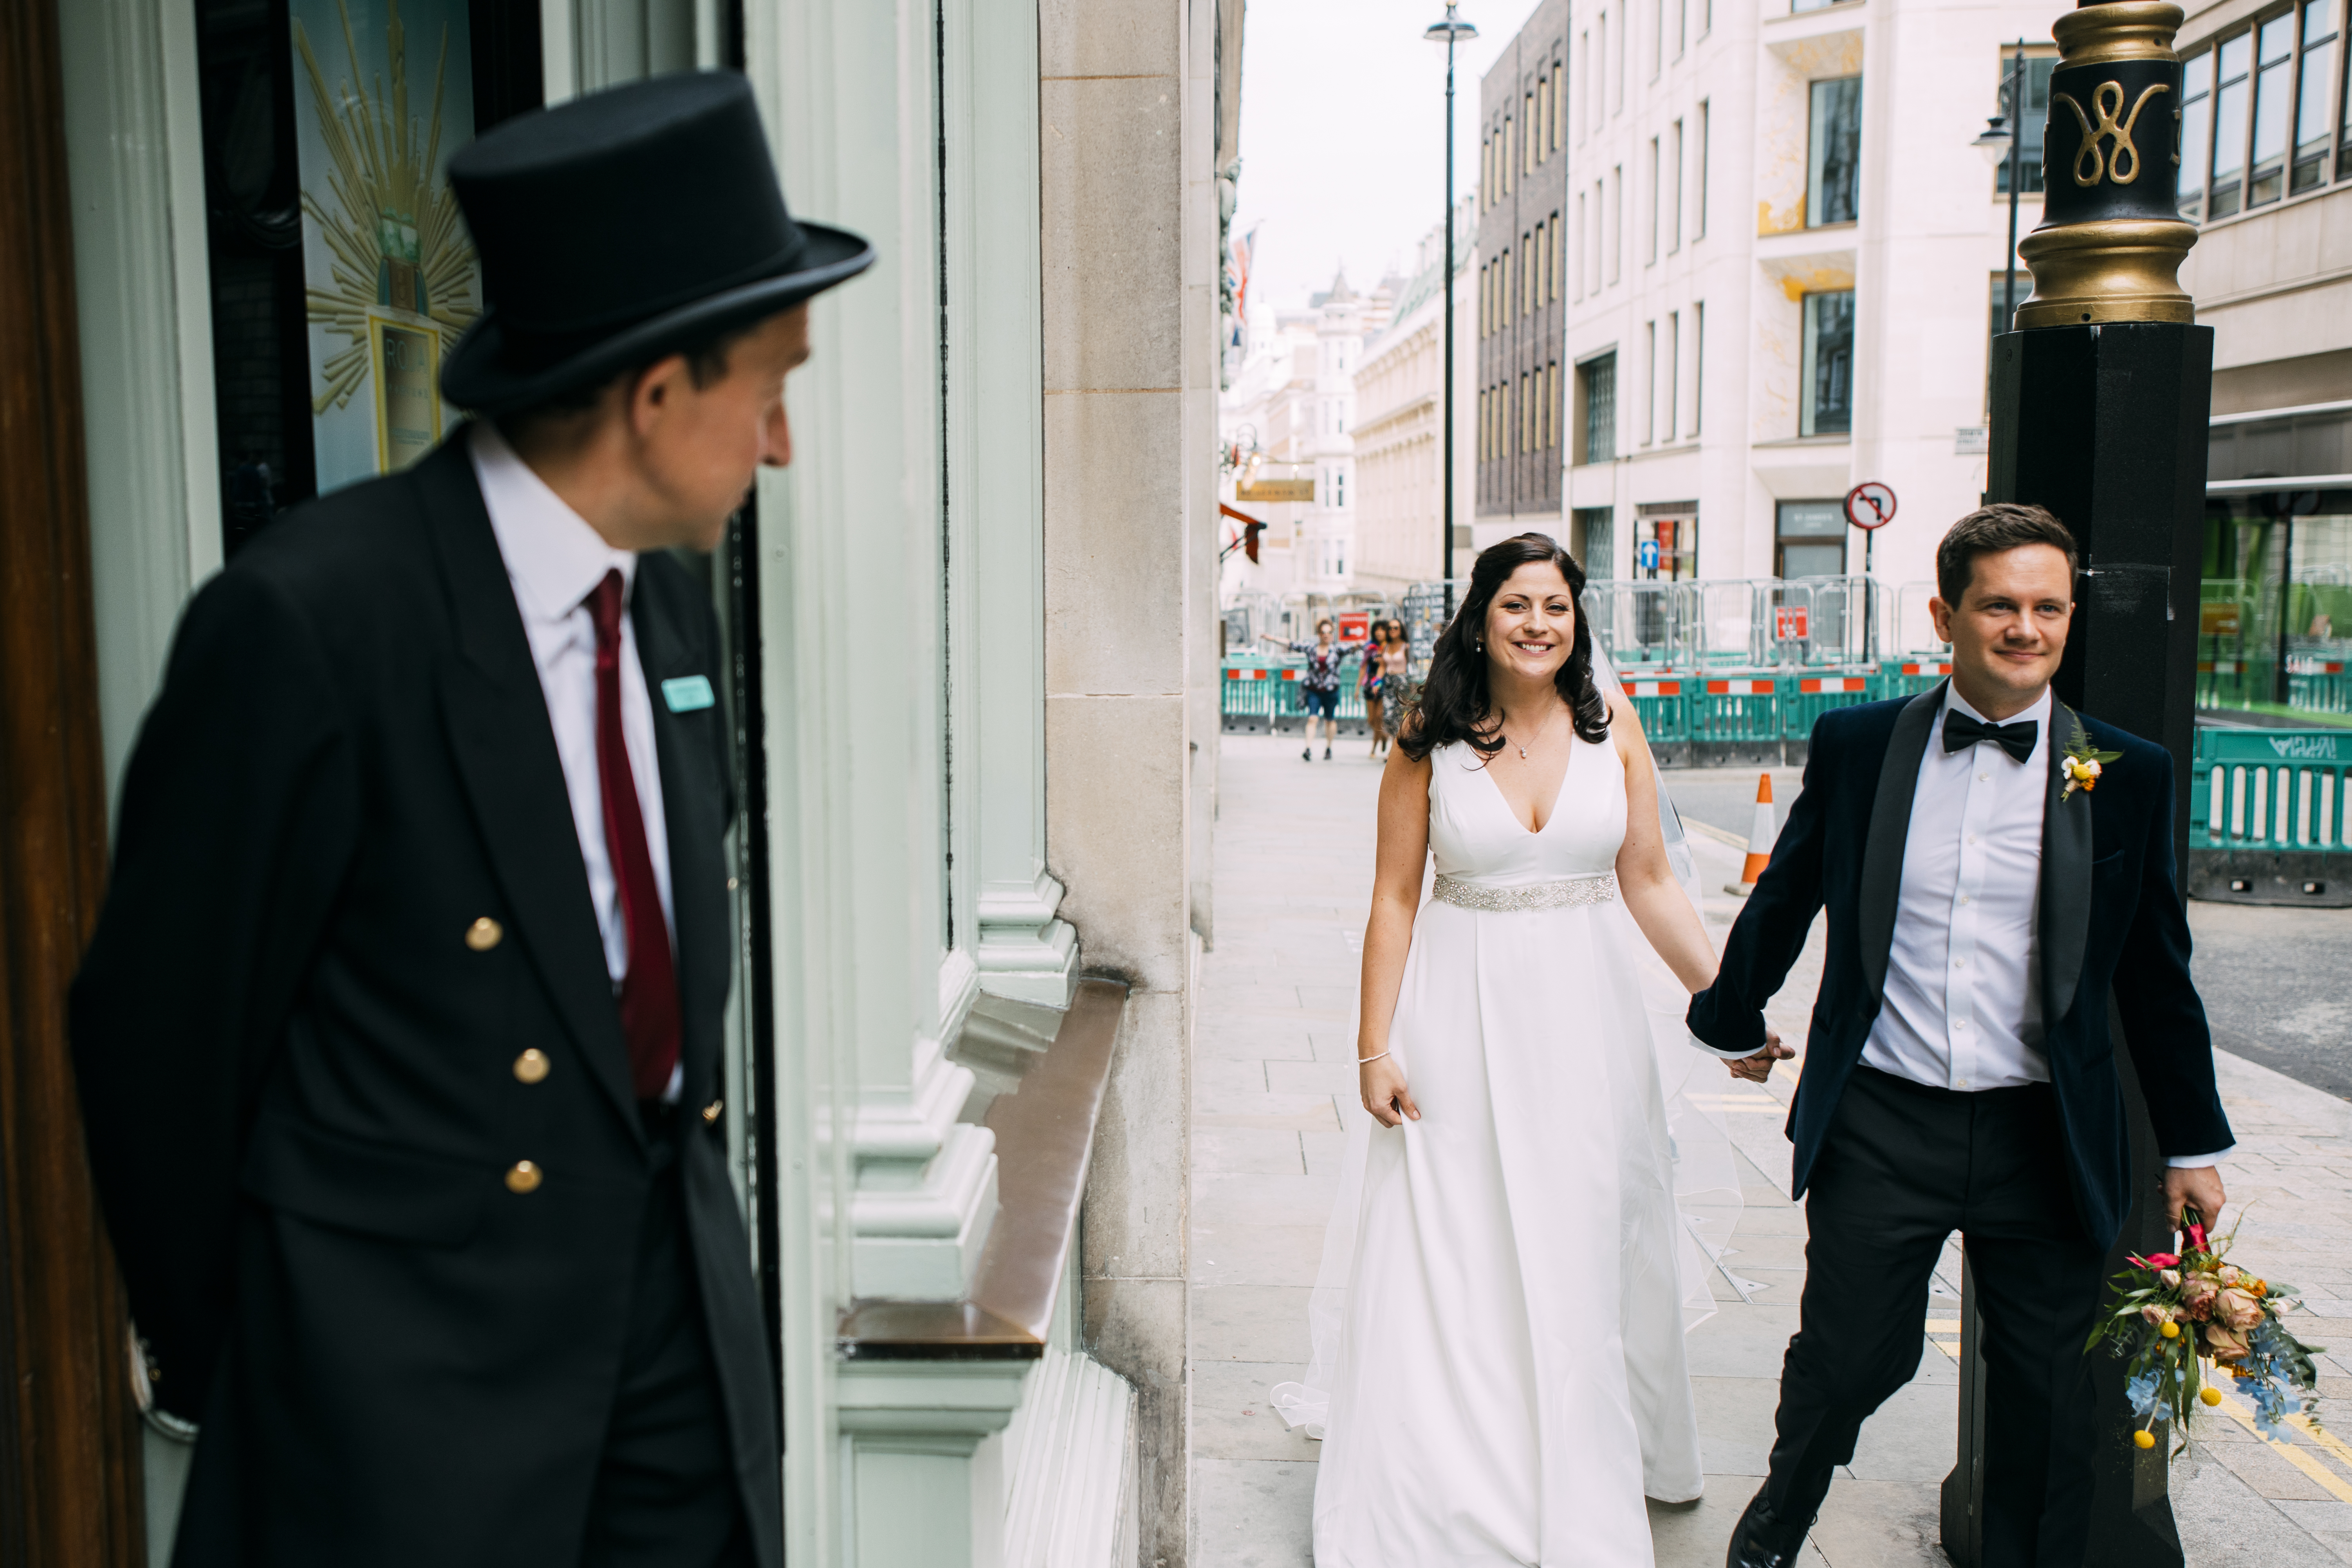 Real bride wearing the Harwood wedding dress by Charlie Brear